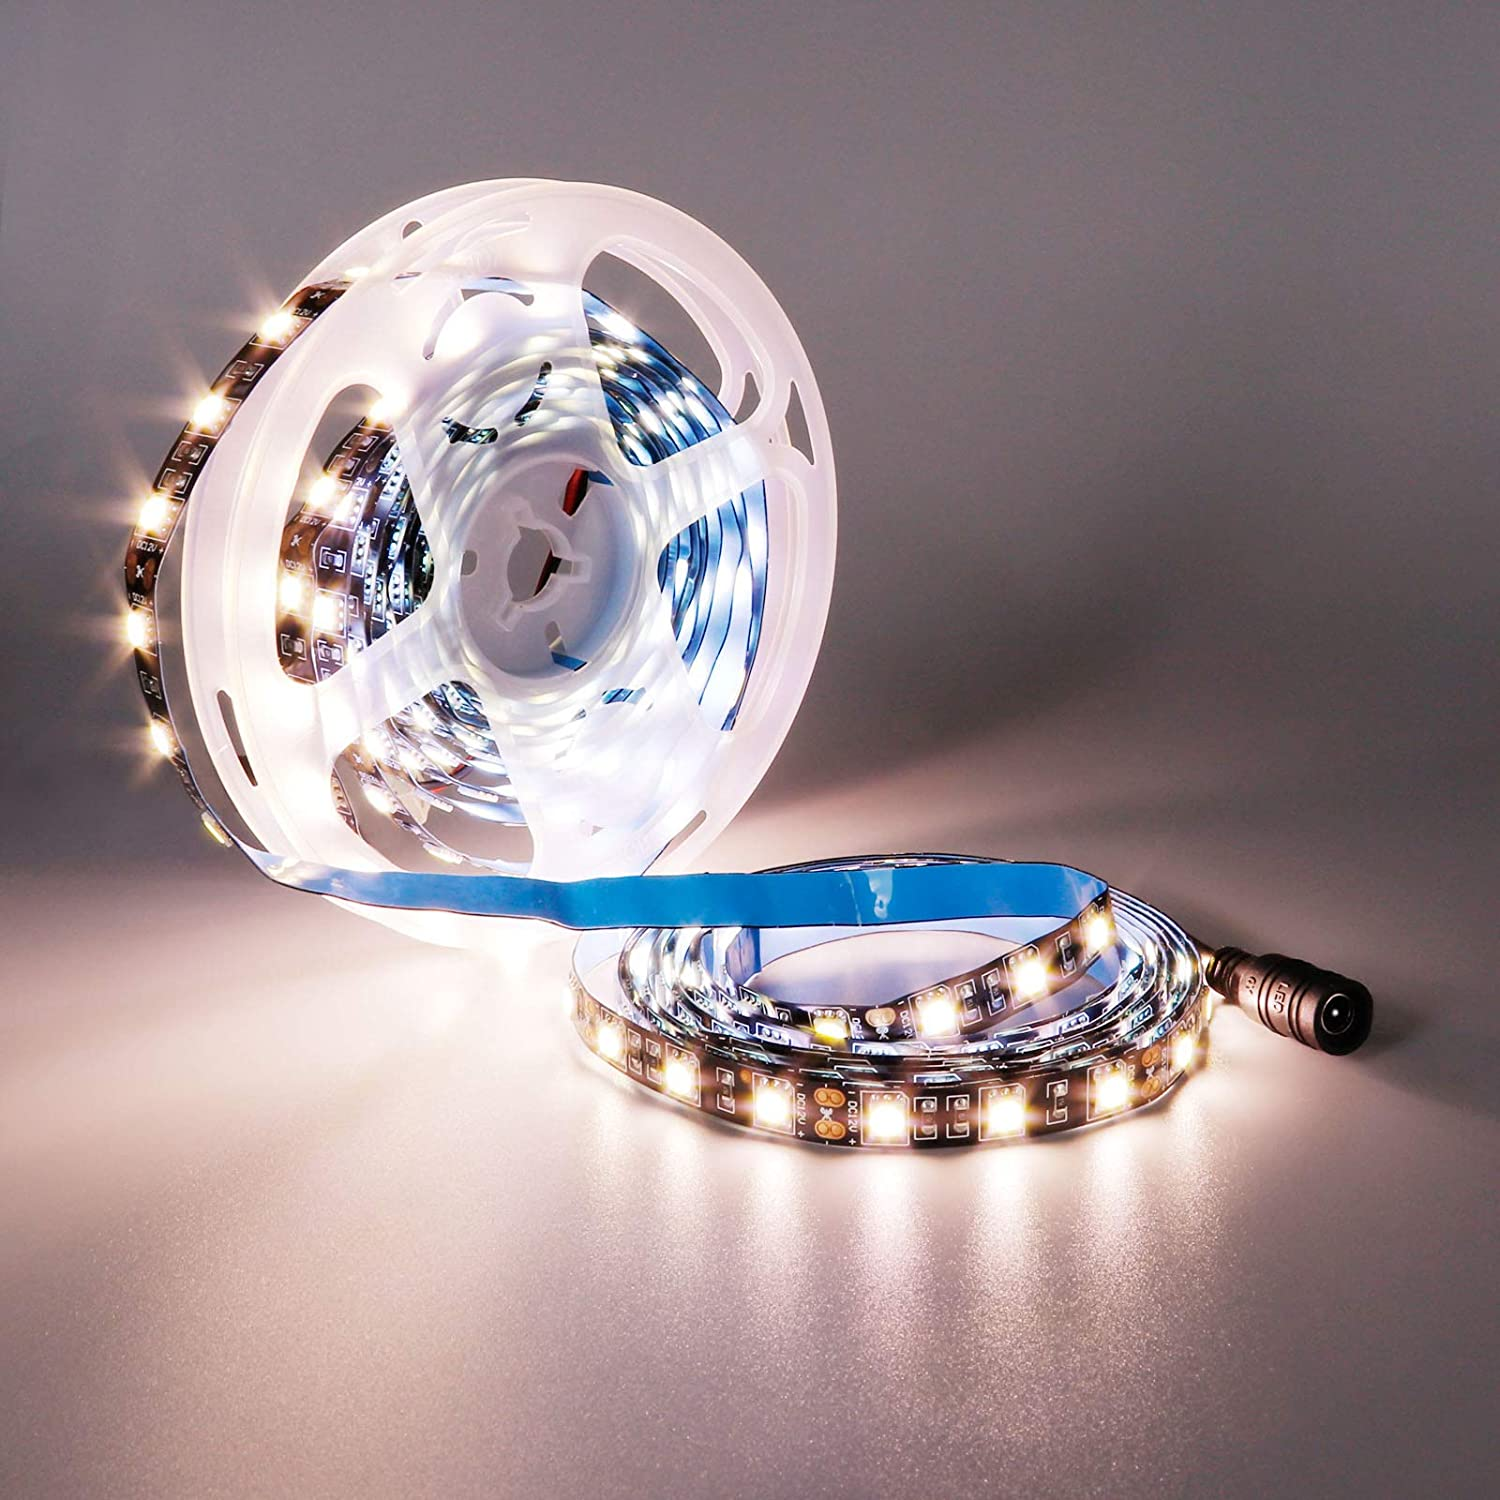 YUNBO LED Strip Light Natural New product!! White 16.4ft 5M 300 Un 4000-4500K free